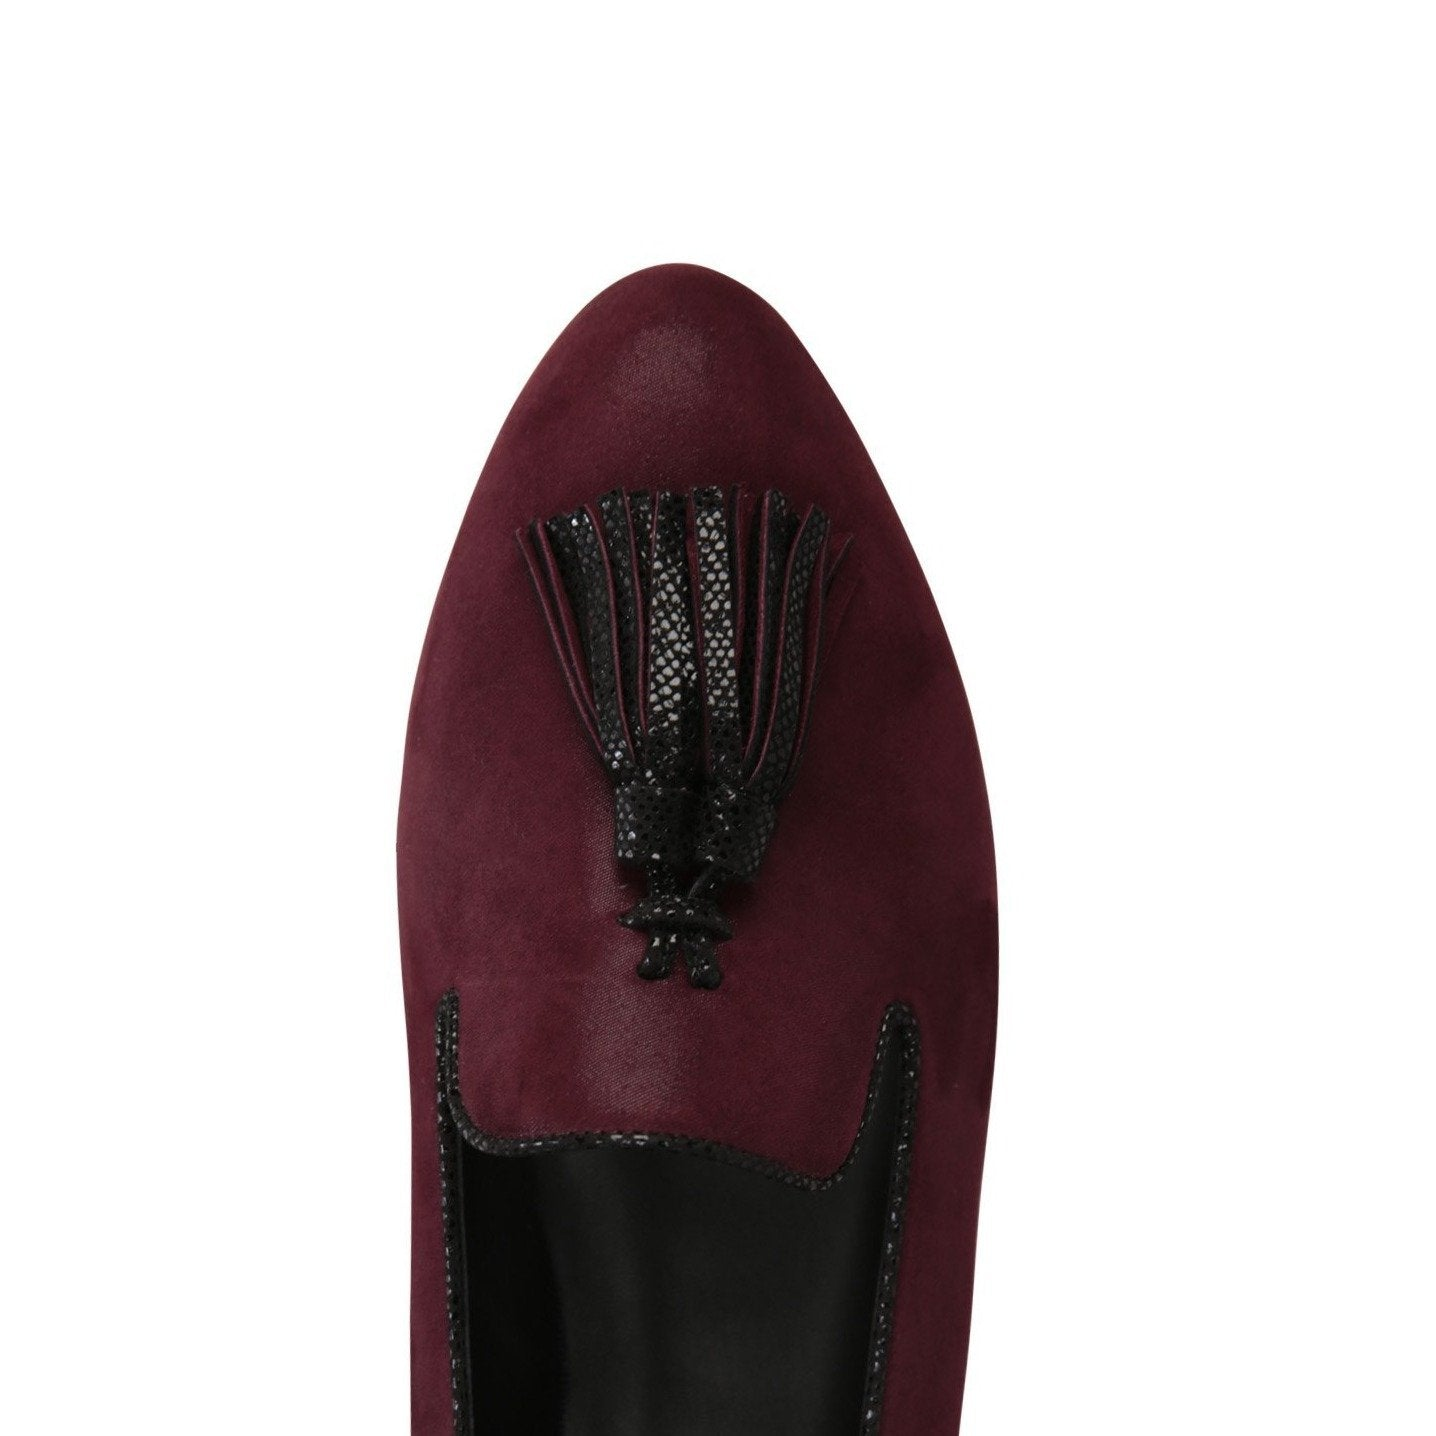 PARMA - Hydra Garnet + Karung Nero, VIAJIYU - Women's Hand Made Sustainable Luxury Shoes. Made in Italy. Made to Order.